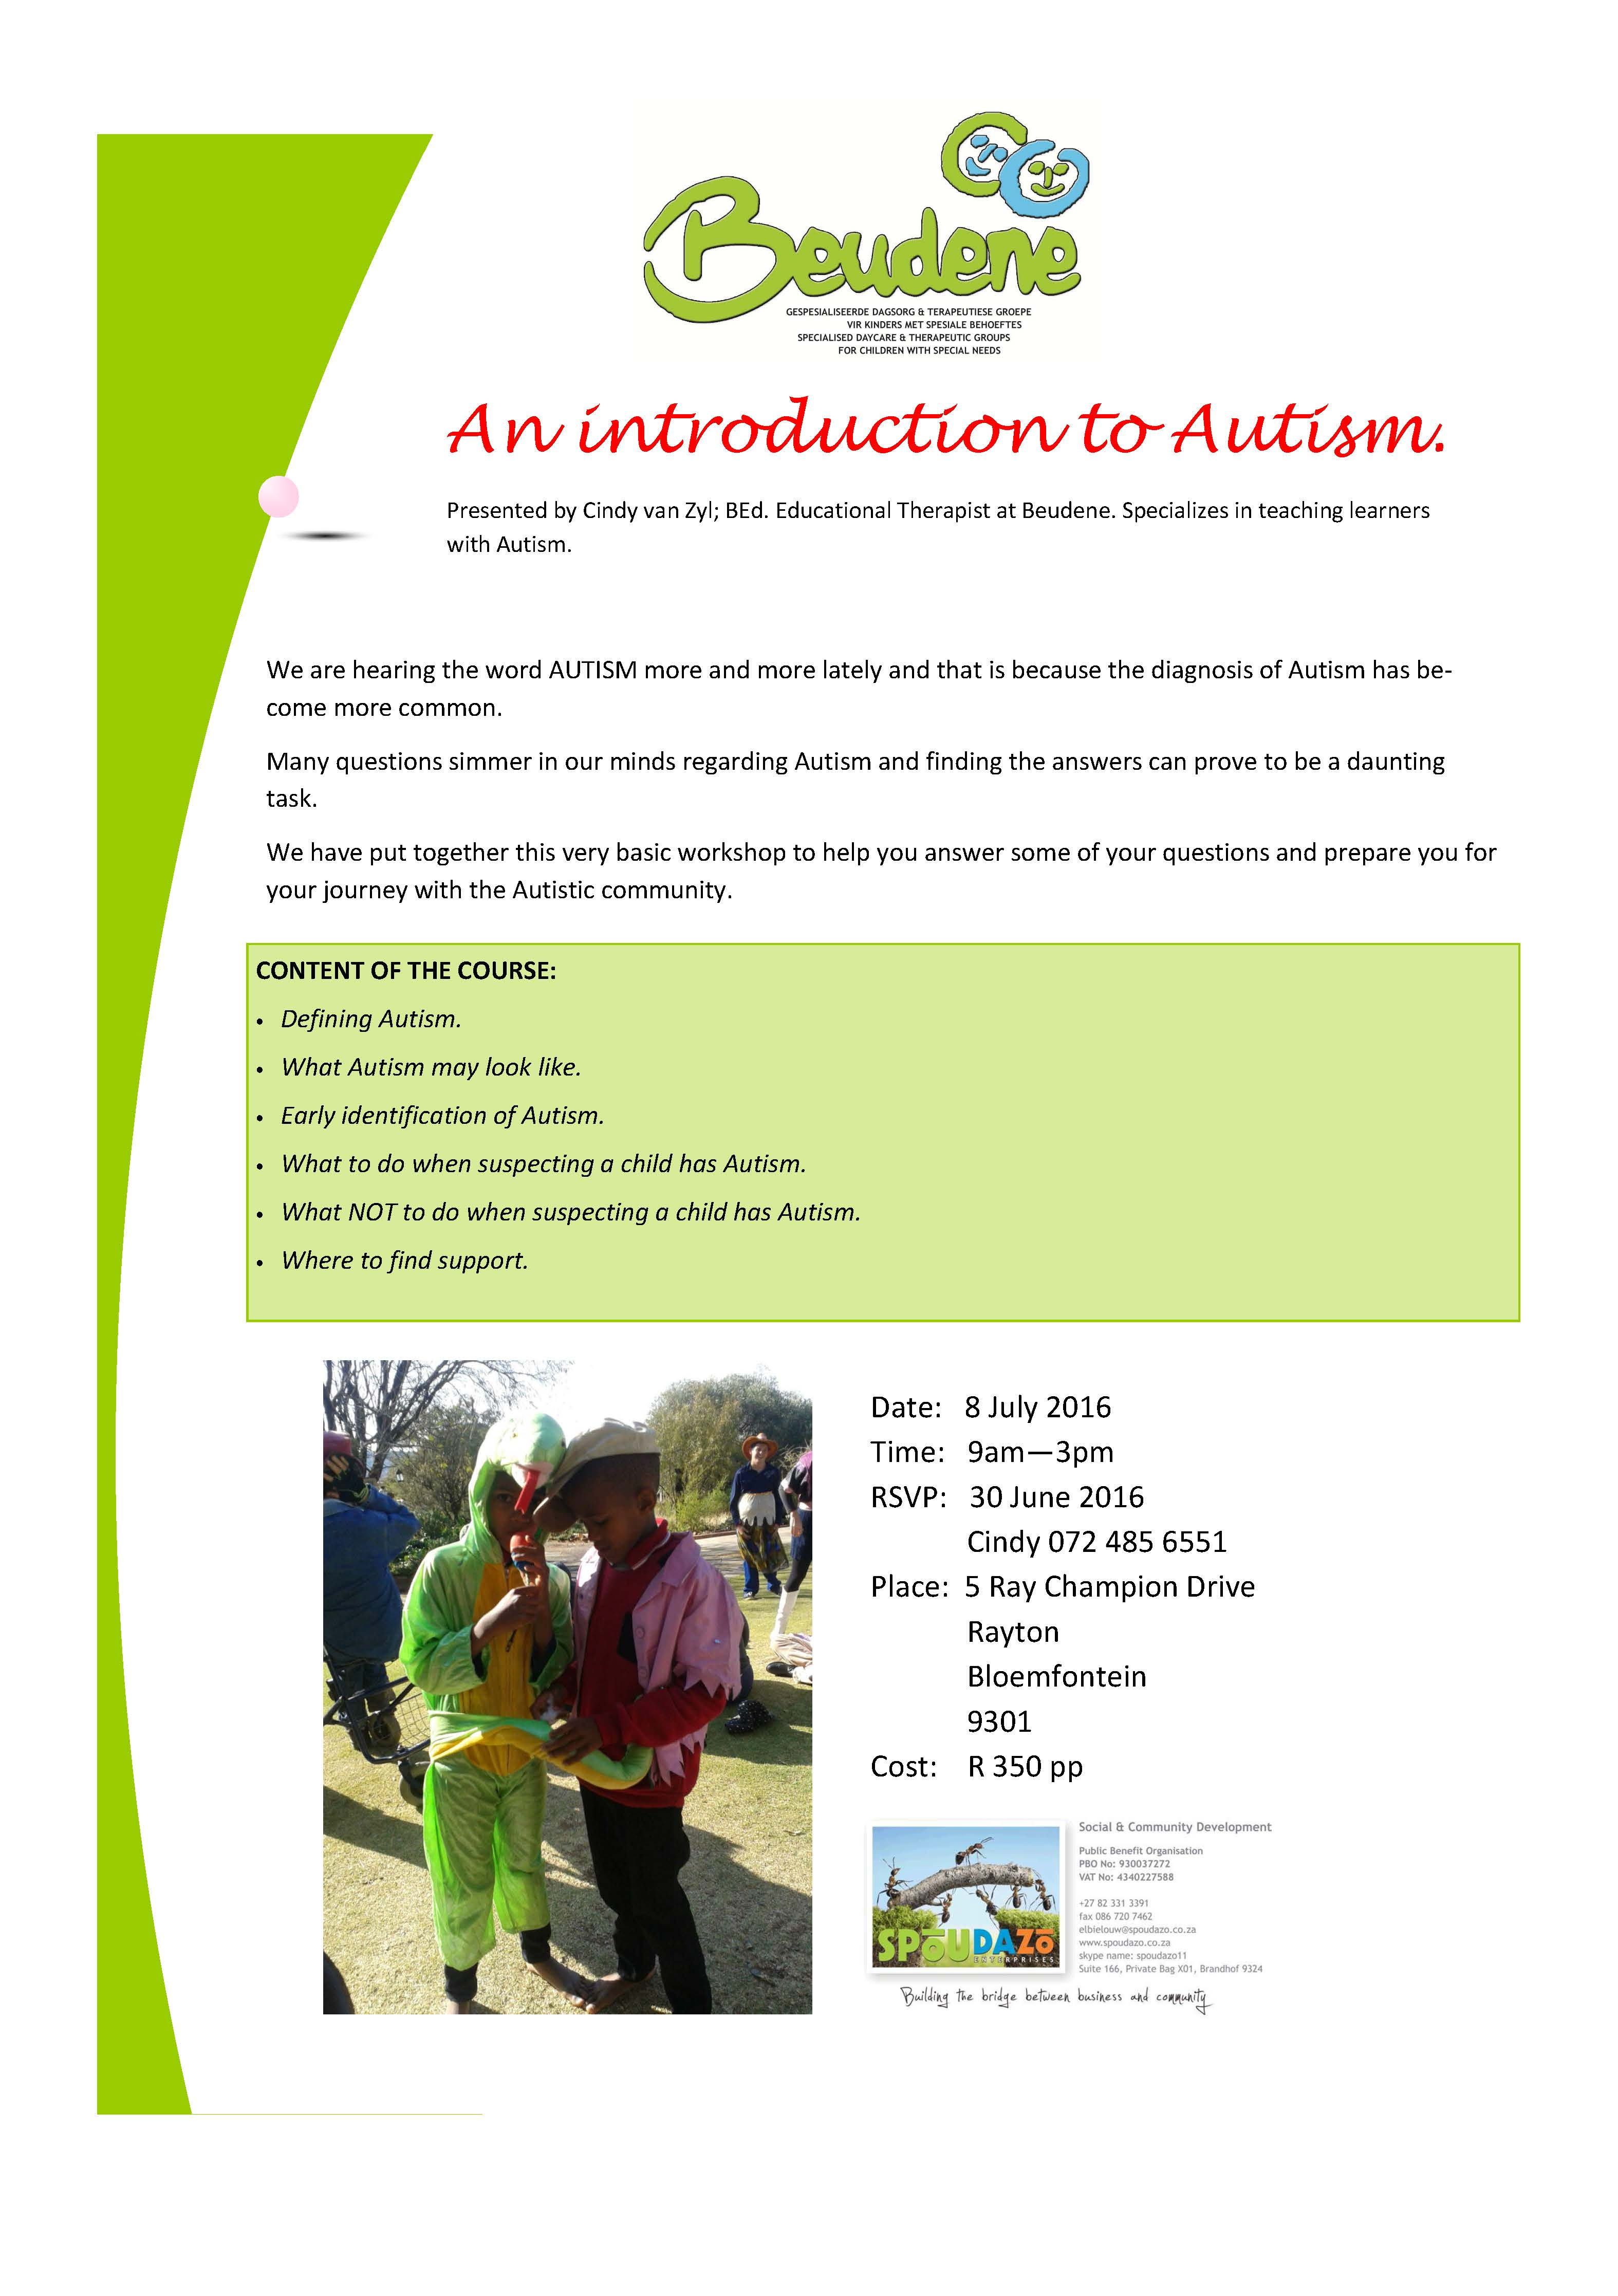 An introduction to Autism